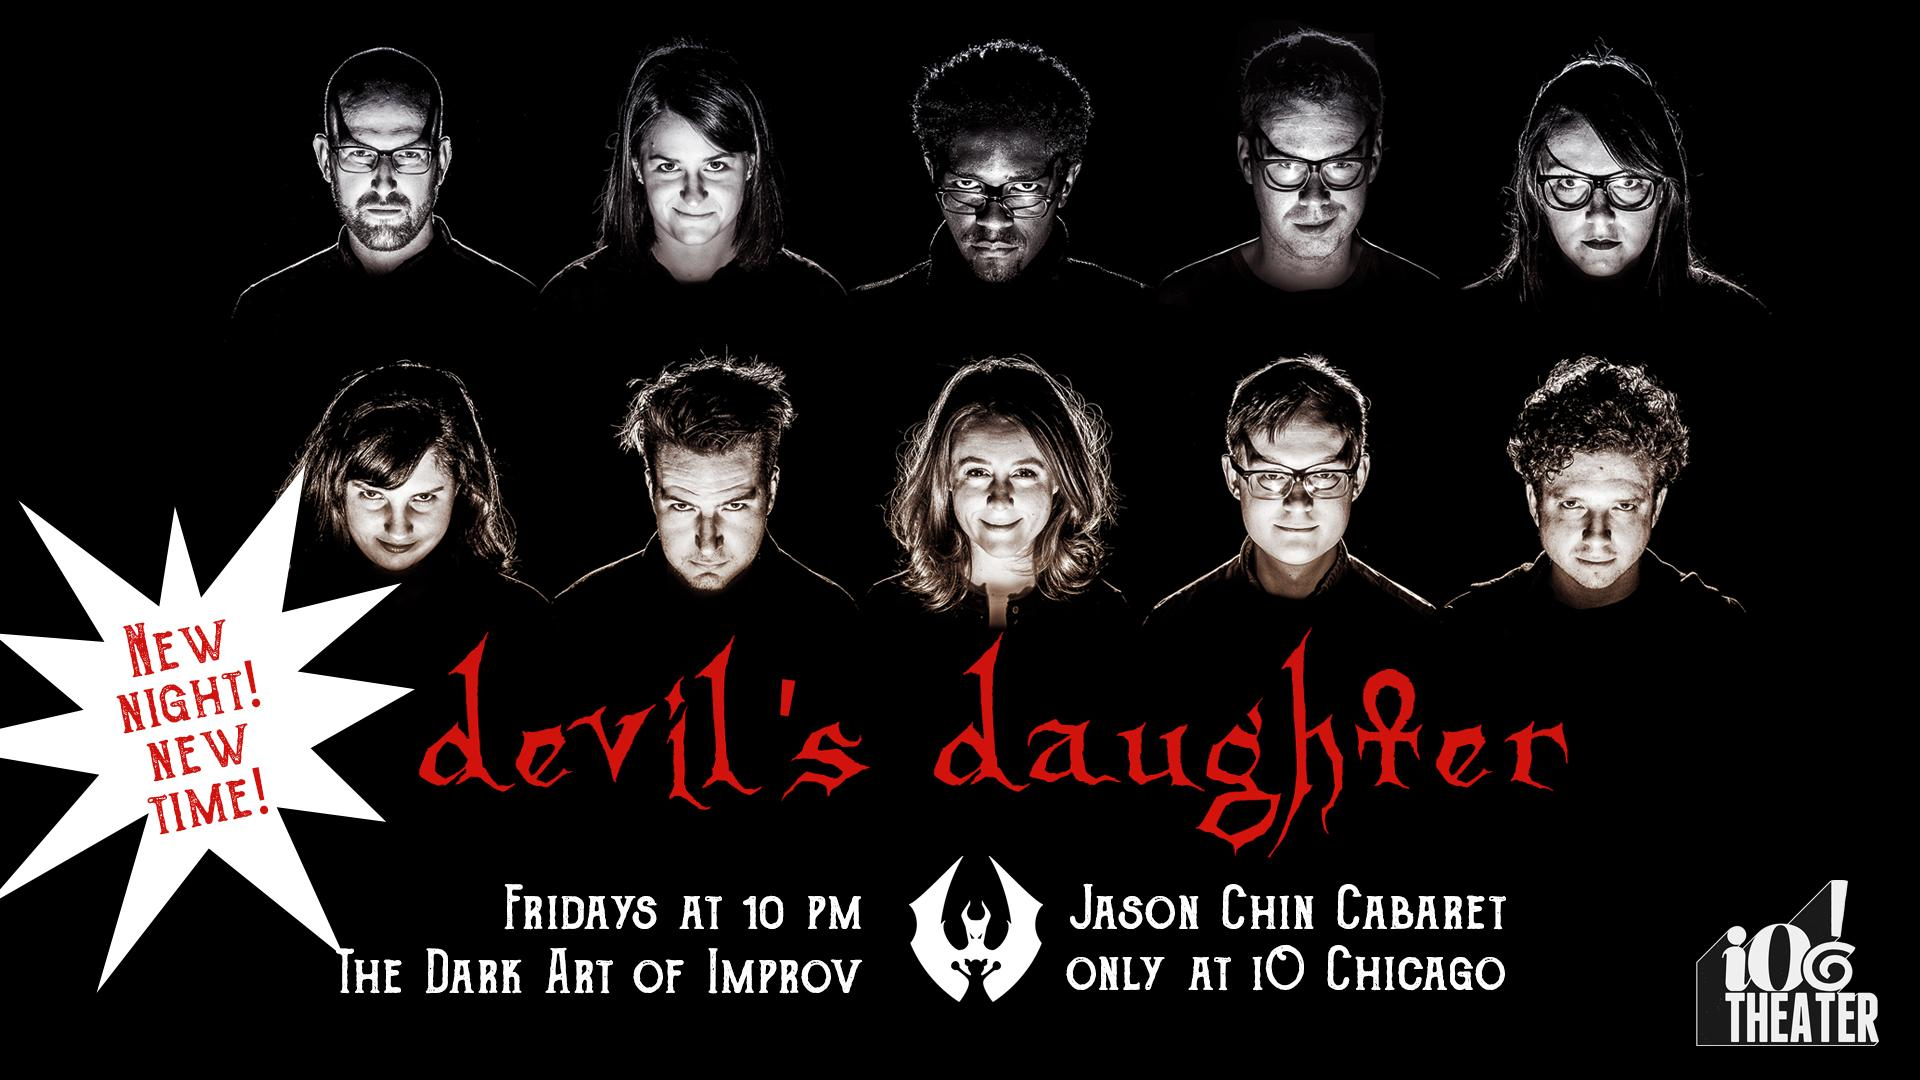 HAROLD NIGHT w/ Devil's Daughter & Nectar